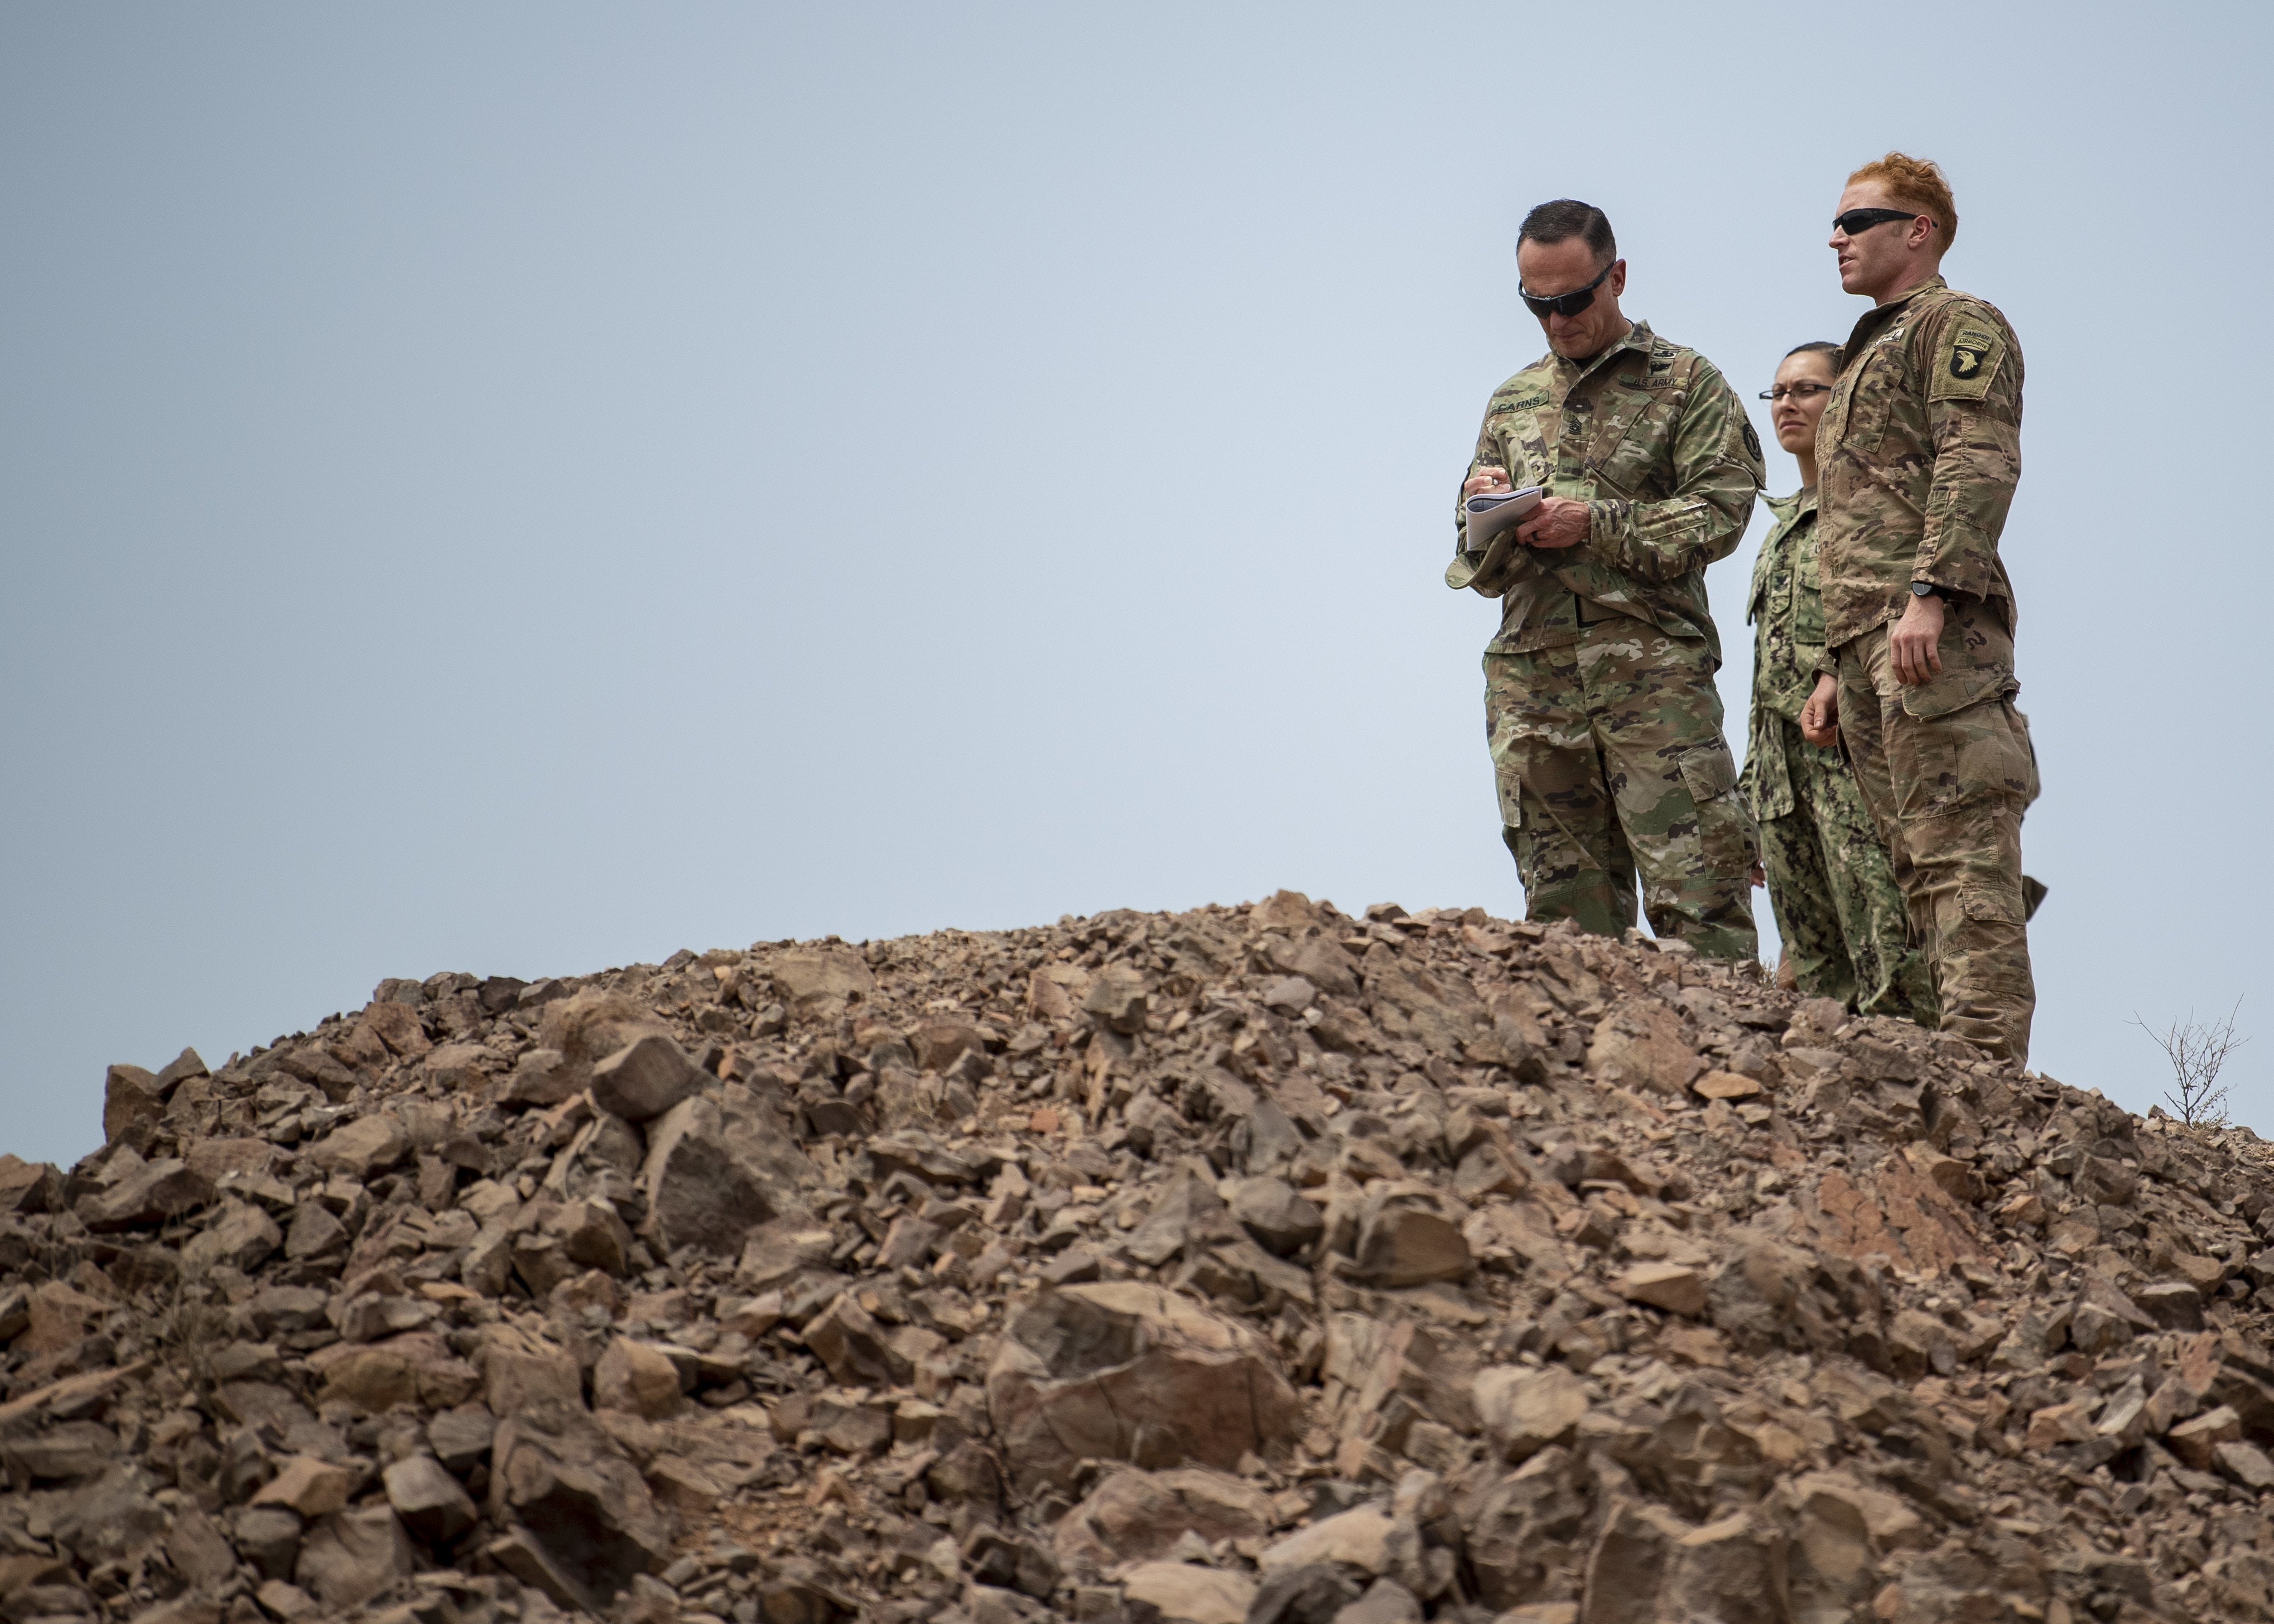 U.S. Army Command Sgt. Maj. Shawn Carns, command senior enlisted leader (SEL), Combined Joint Task Force-Horn of Africa (CJTF-HOA), takes notes while being briefed by U.S. Army First Lt. Nicholas Noga, platoon leader, 101st Division, 1st Battalion, 26th Infantry Regiment, Task Force Warrior, assigned to CJTF-HOA, during his battlefield circulation visit at Arta Range, Djibouti, Aug. 26, 2019. Battlefield circulation visits allow Carns to meet with units within CJTF-HOA's combined joint operations area for familiarization and rapport-building. (U.S. Air Force photo by Staff Sgt. J.D. Strong II)